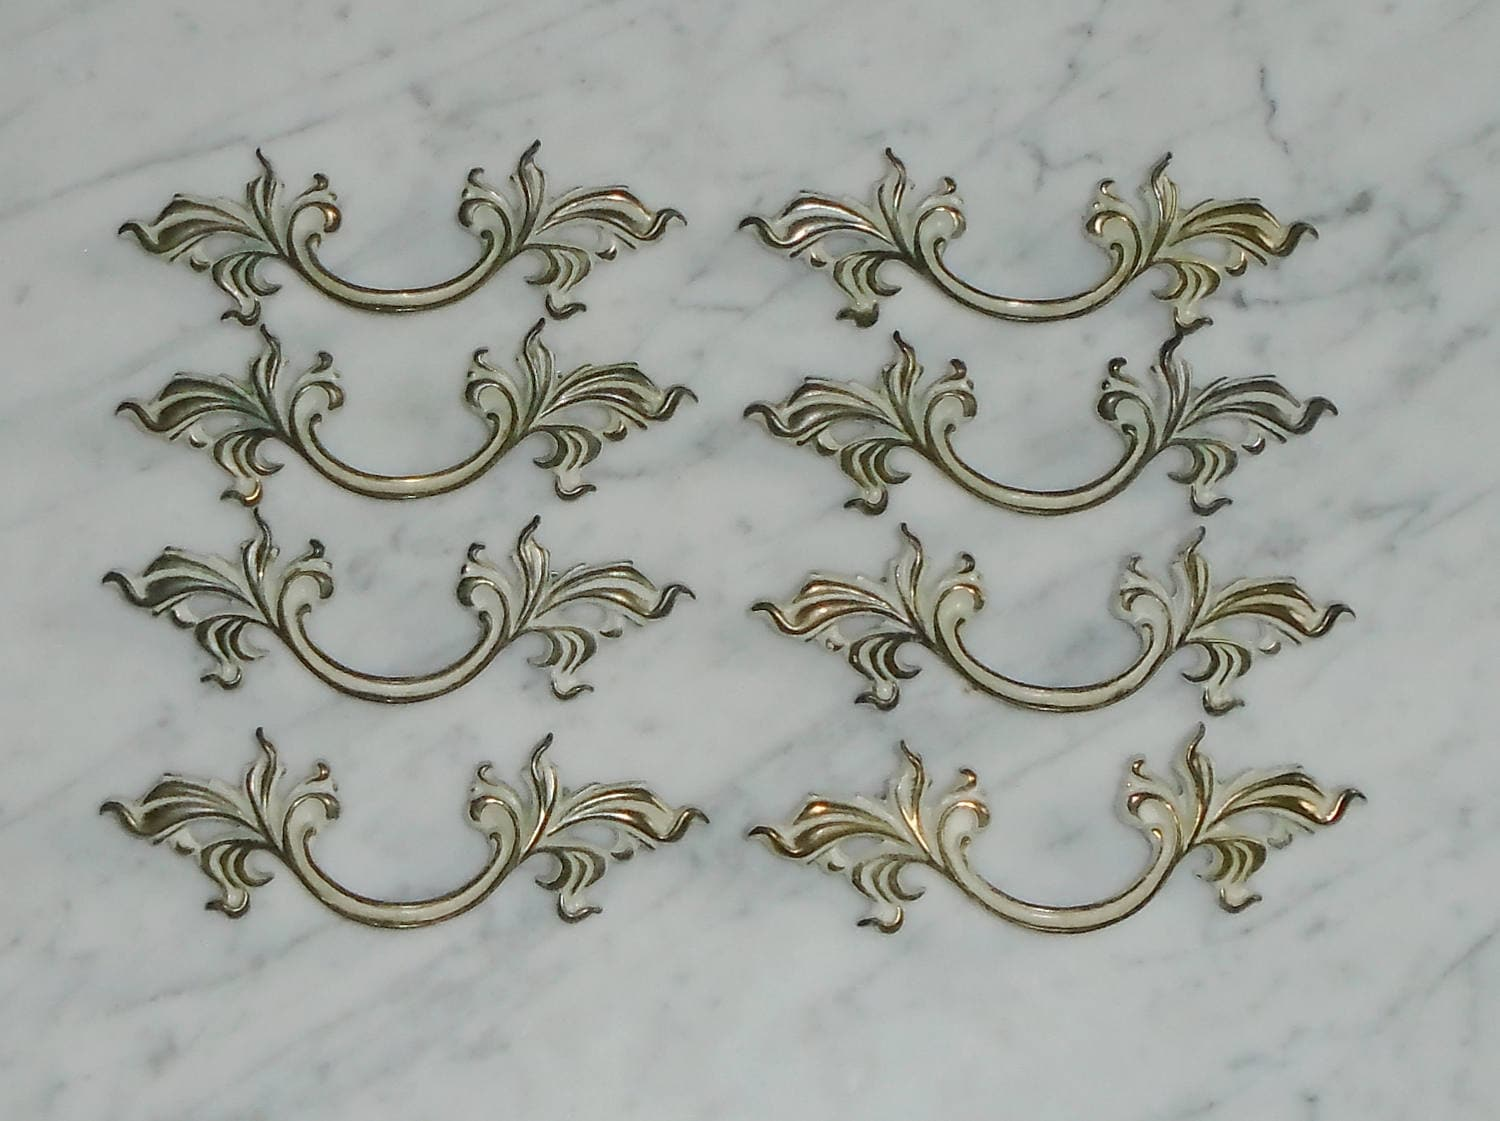 8 Vintage French Provincial 5 3/4 inch Long Brass Bronze Cabinet ...